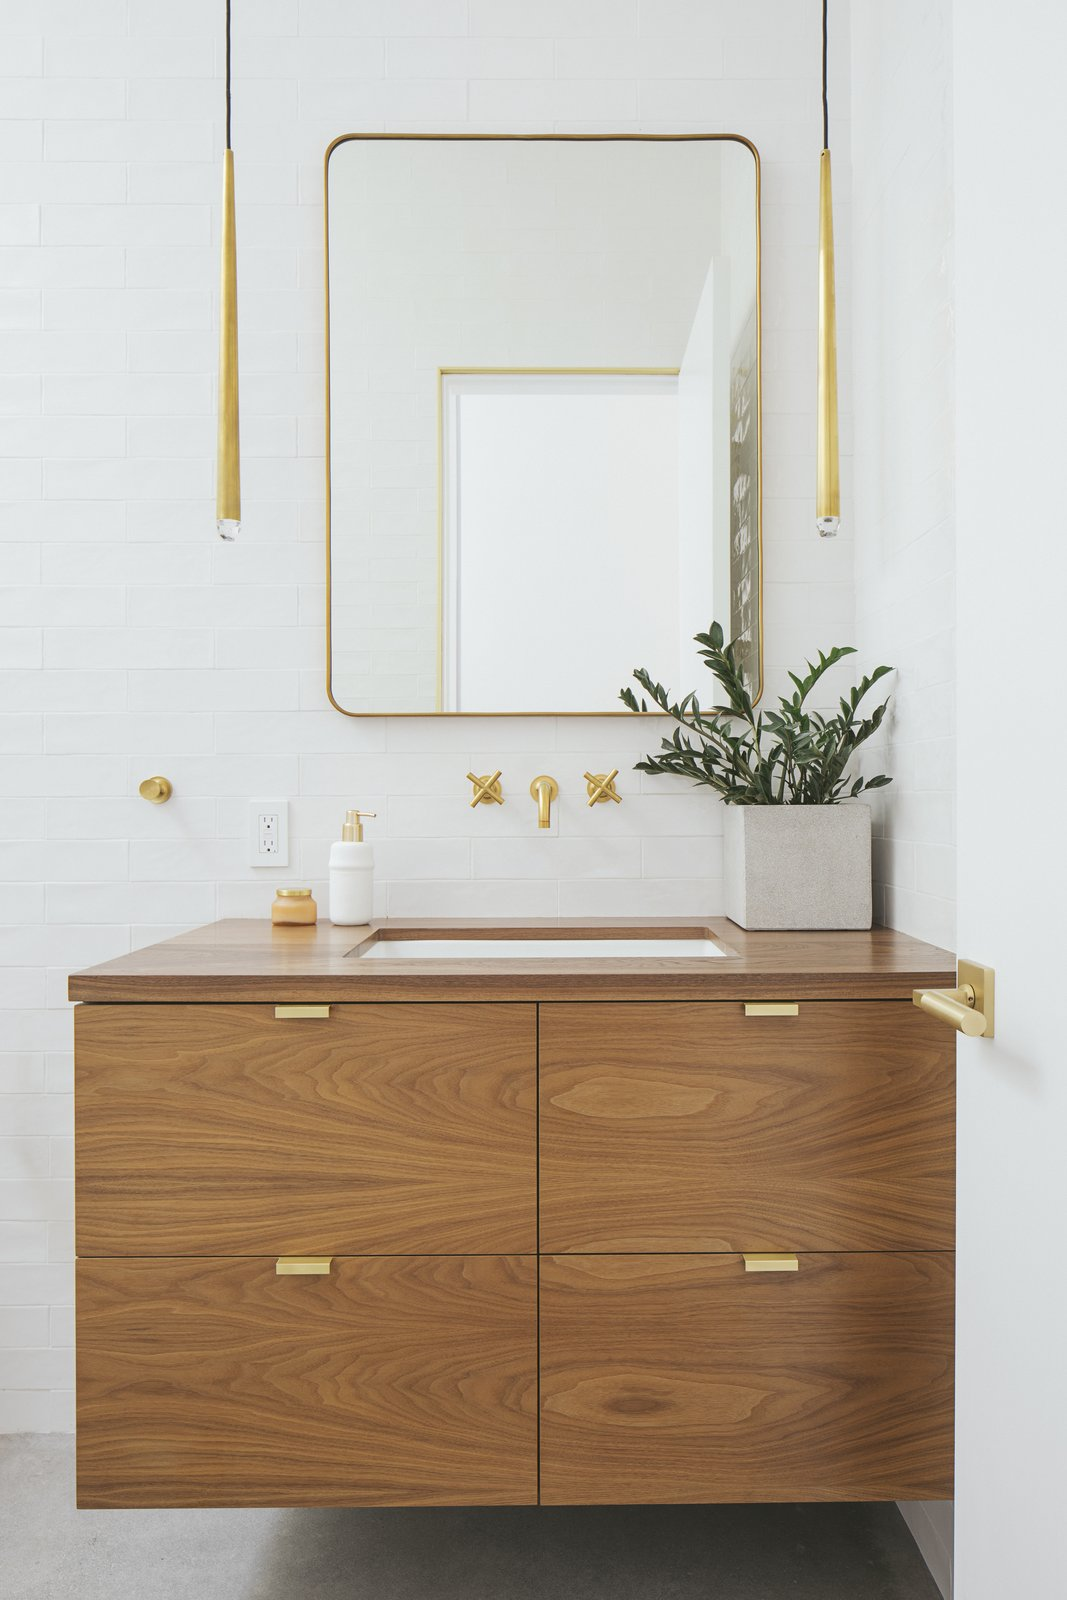 Bath Room, Subway Tile Wall, Undermount Sink, Wood Counter, and Pendant Lighting Now, the bathroom is a beautiful blend of white, wood, and brass. The Lucent mirror and Aquitaine pendant lighting in burnished brass are from RH Modern.     Best Photos from A Dark Midcentury Becomes a Luminous Gem